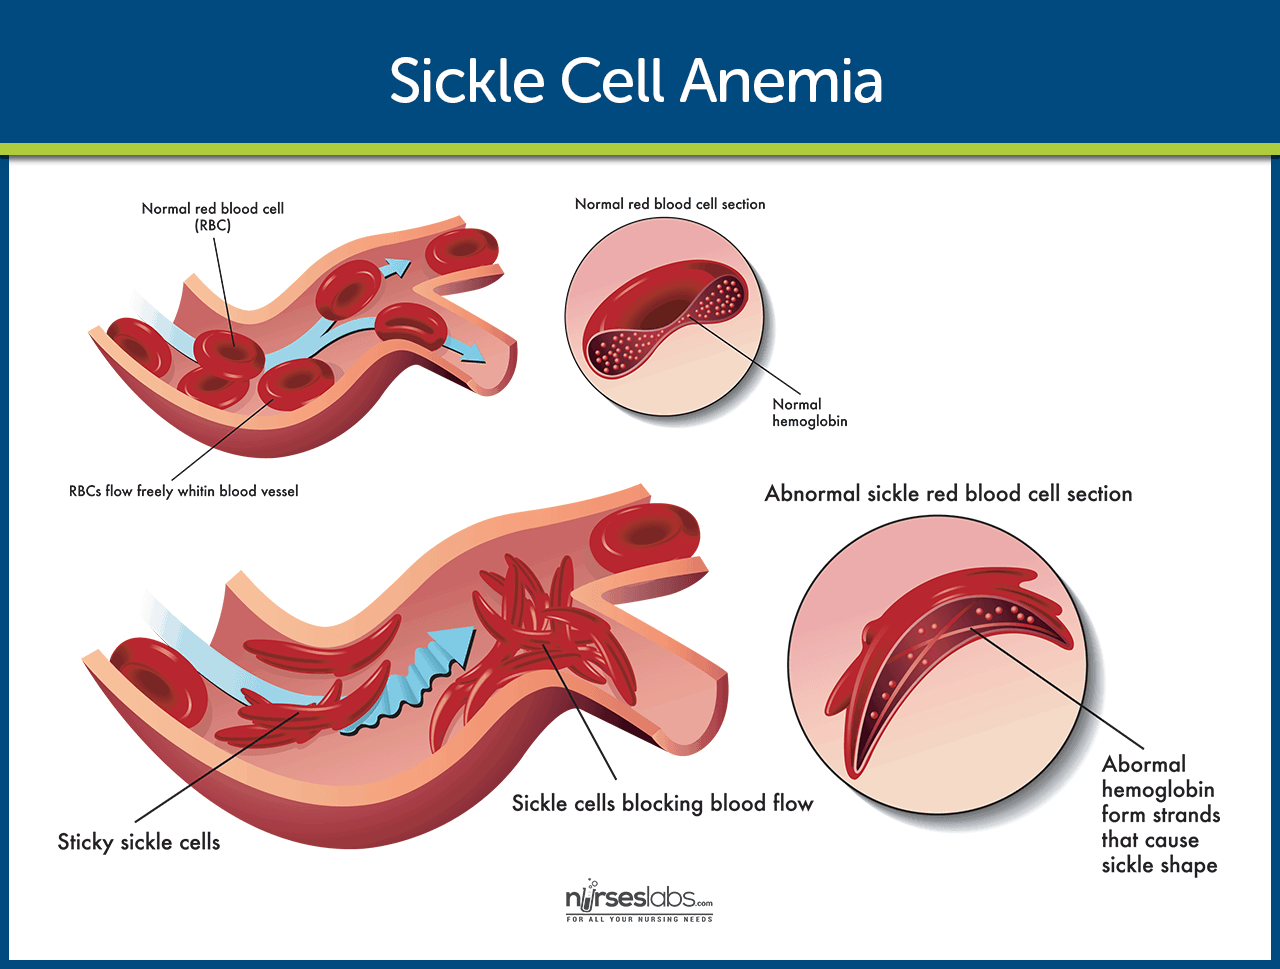 How to Prevent Sickle Cell Anemia How to Prevent Sickle Cell Anemia new foto